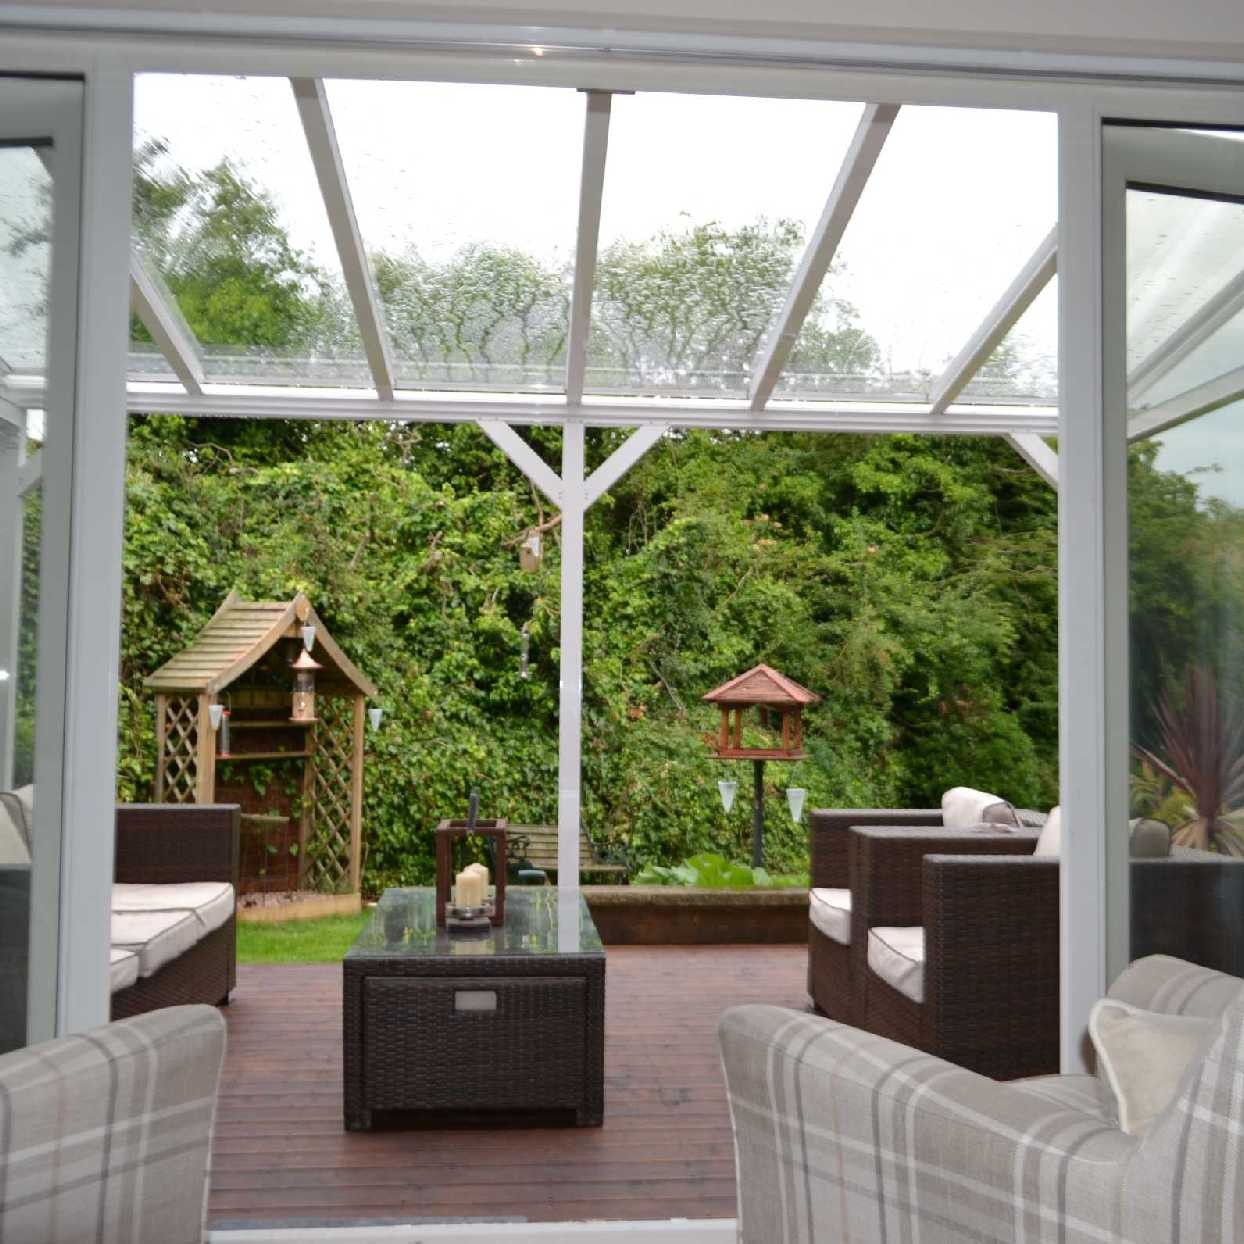 Great selection of Omega Smart White Lean-To Canopy UNGLAZED for 6mm Glazing - 7.7m (W) x 1.5m (P), (4) Supporting Posts